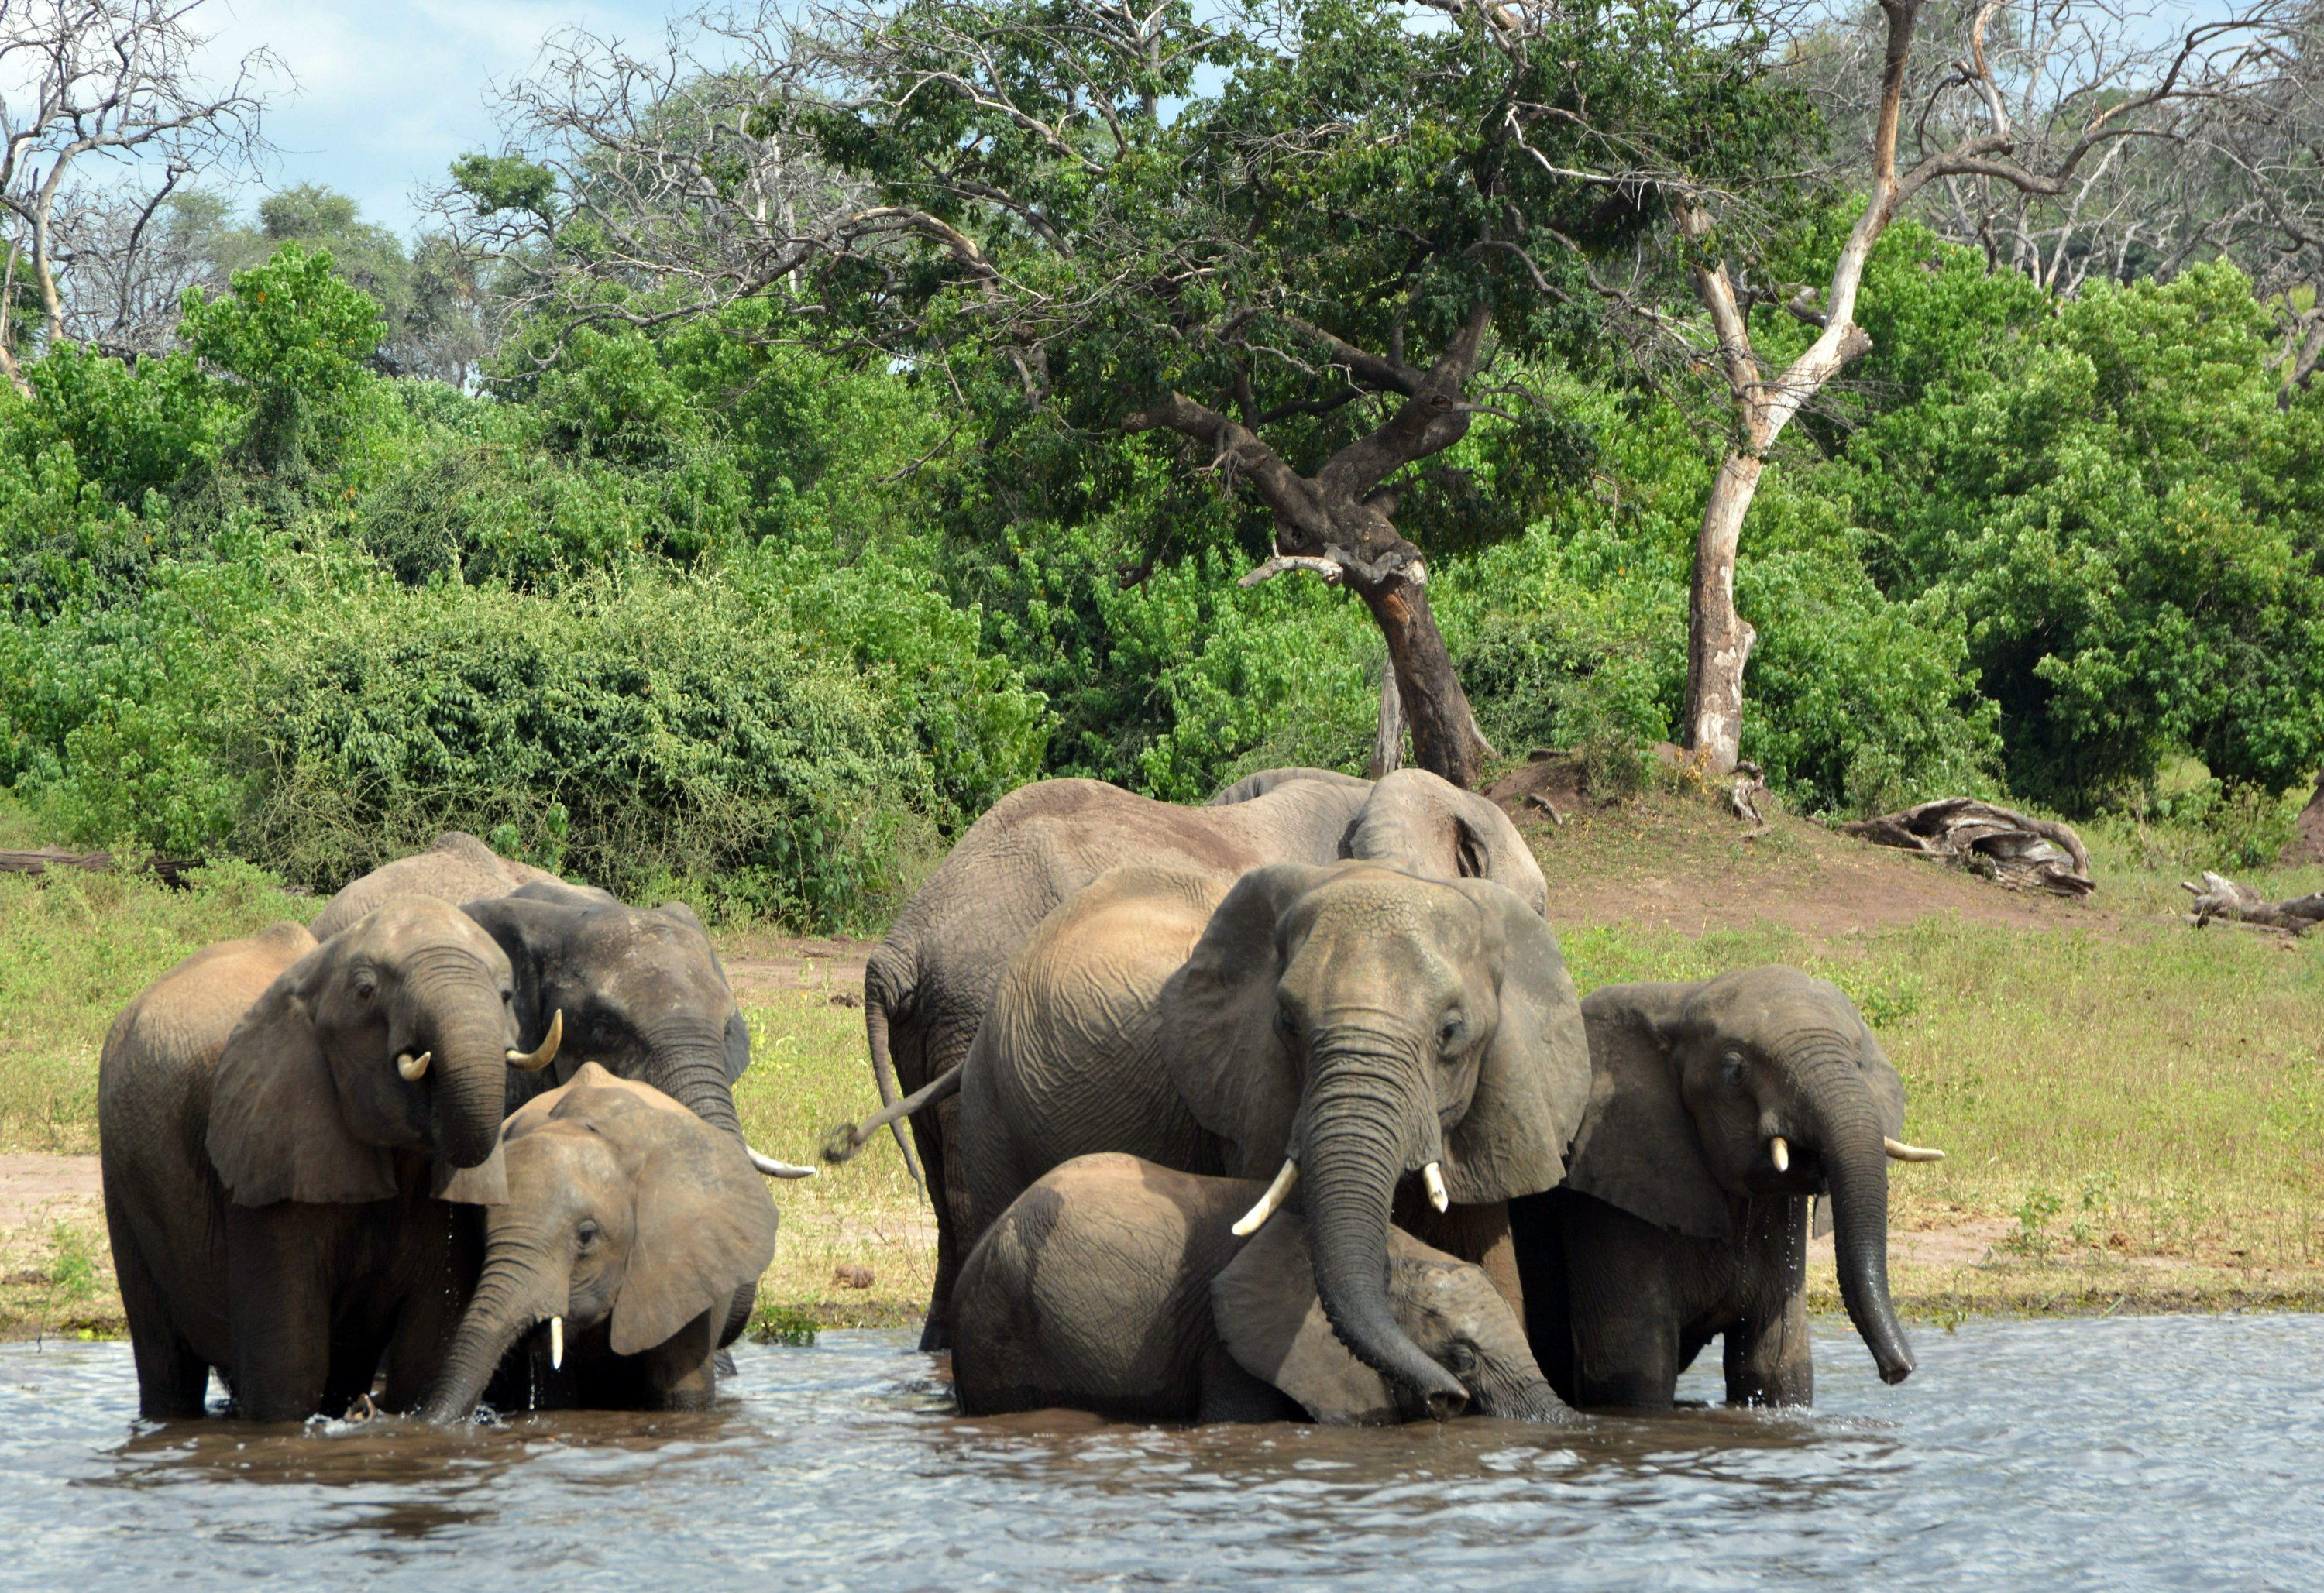 330 elephants in Botswana may have died from toxic algae